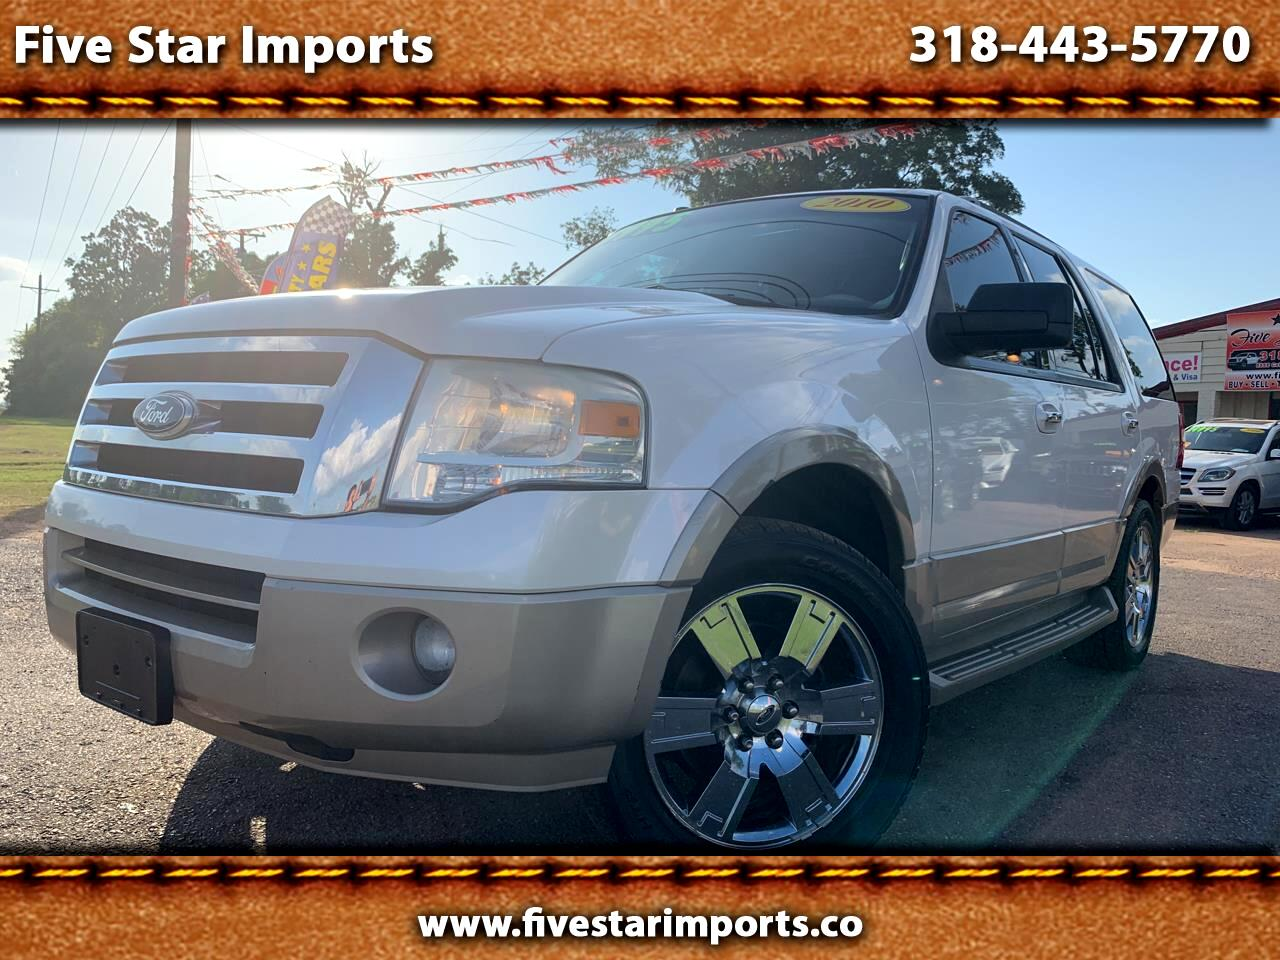 2010 Ford Expedition 2WD 4dr Eddie Bauer